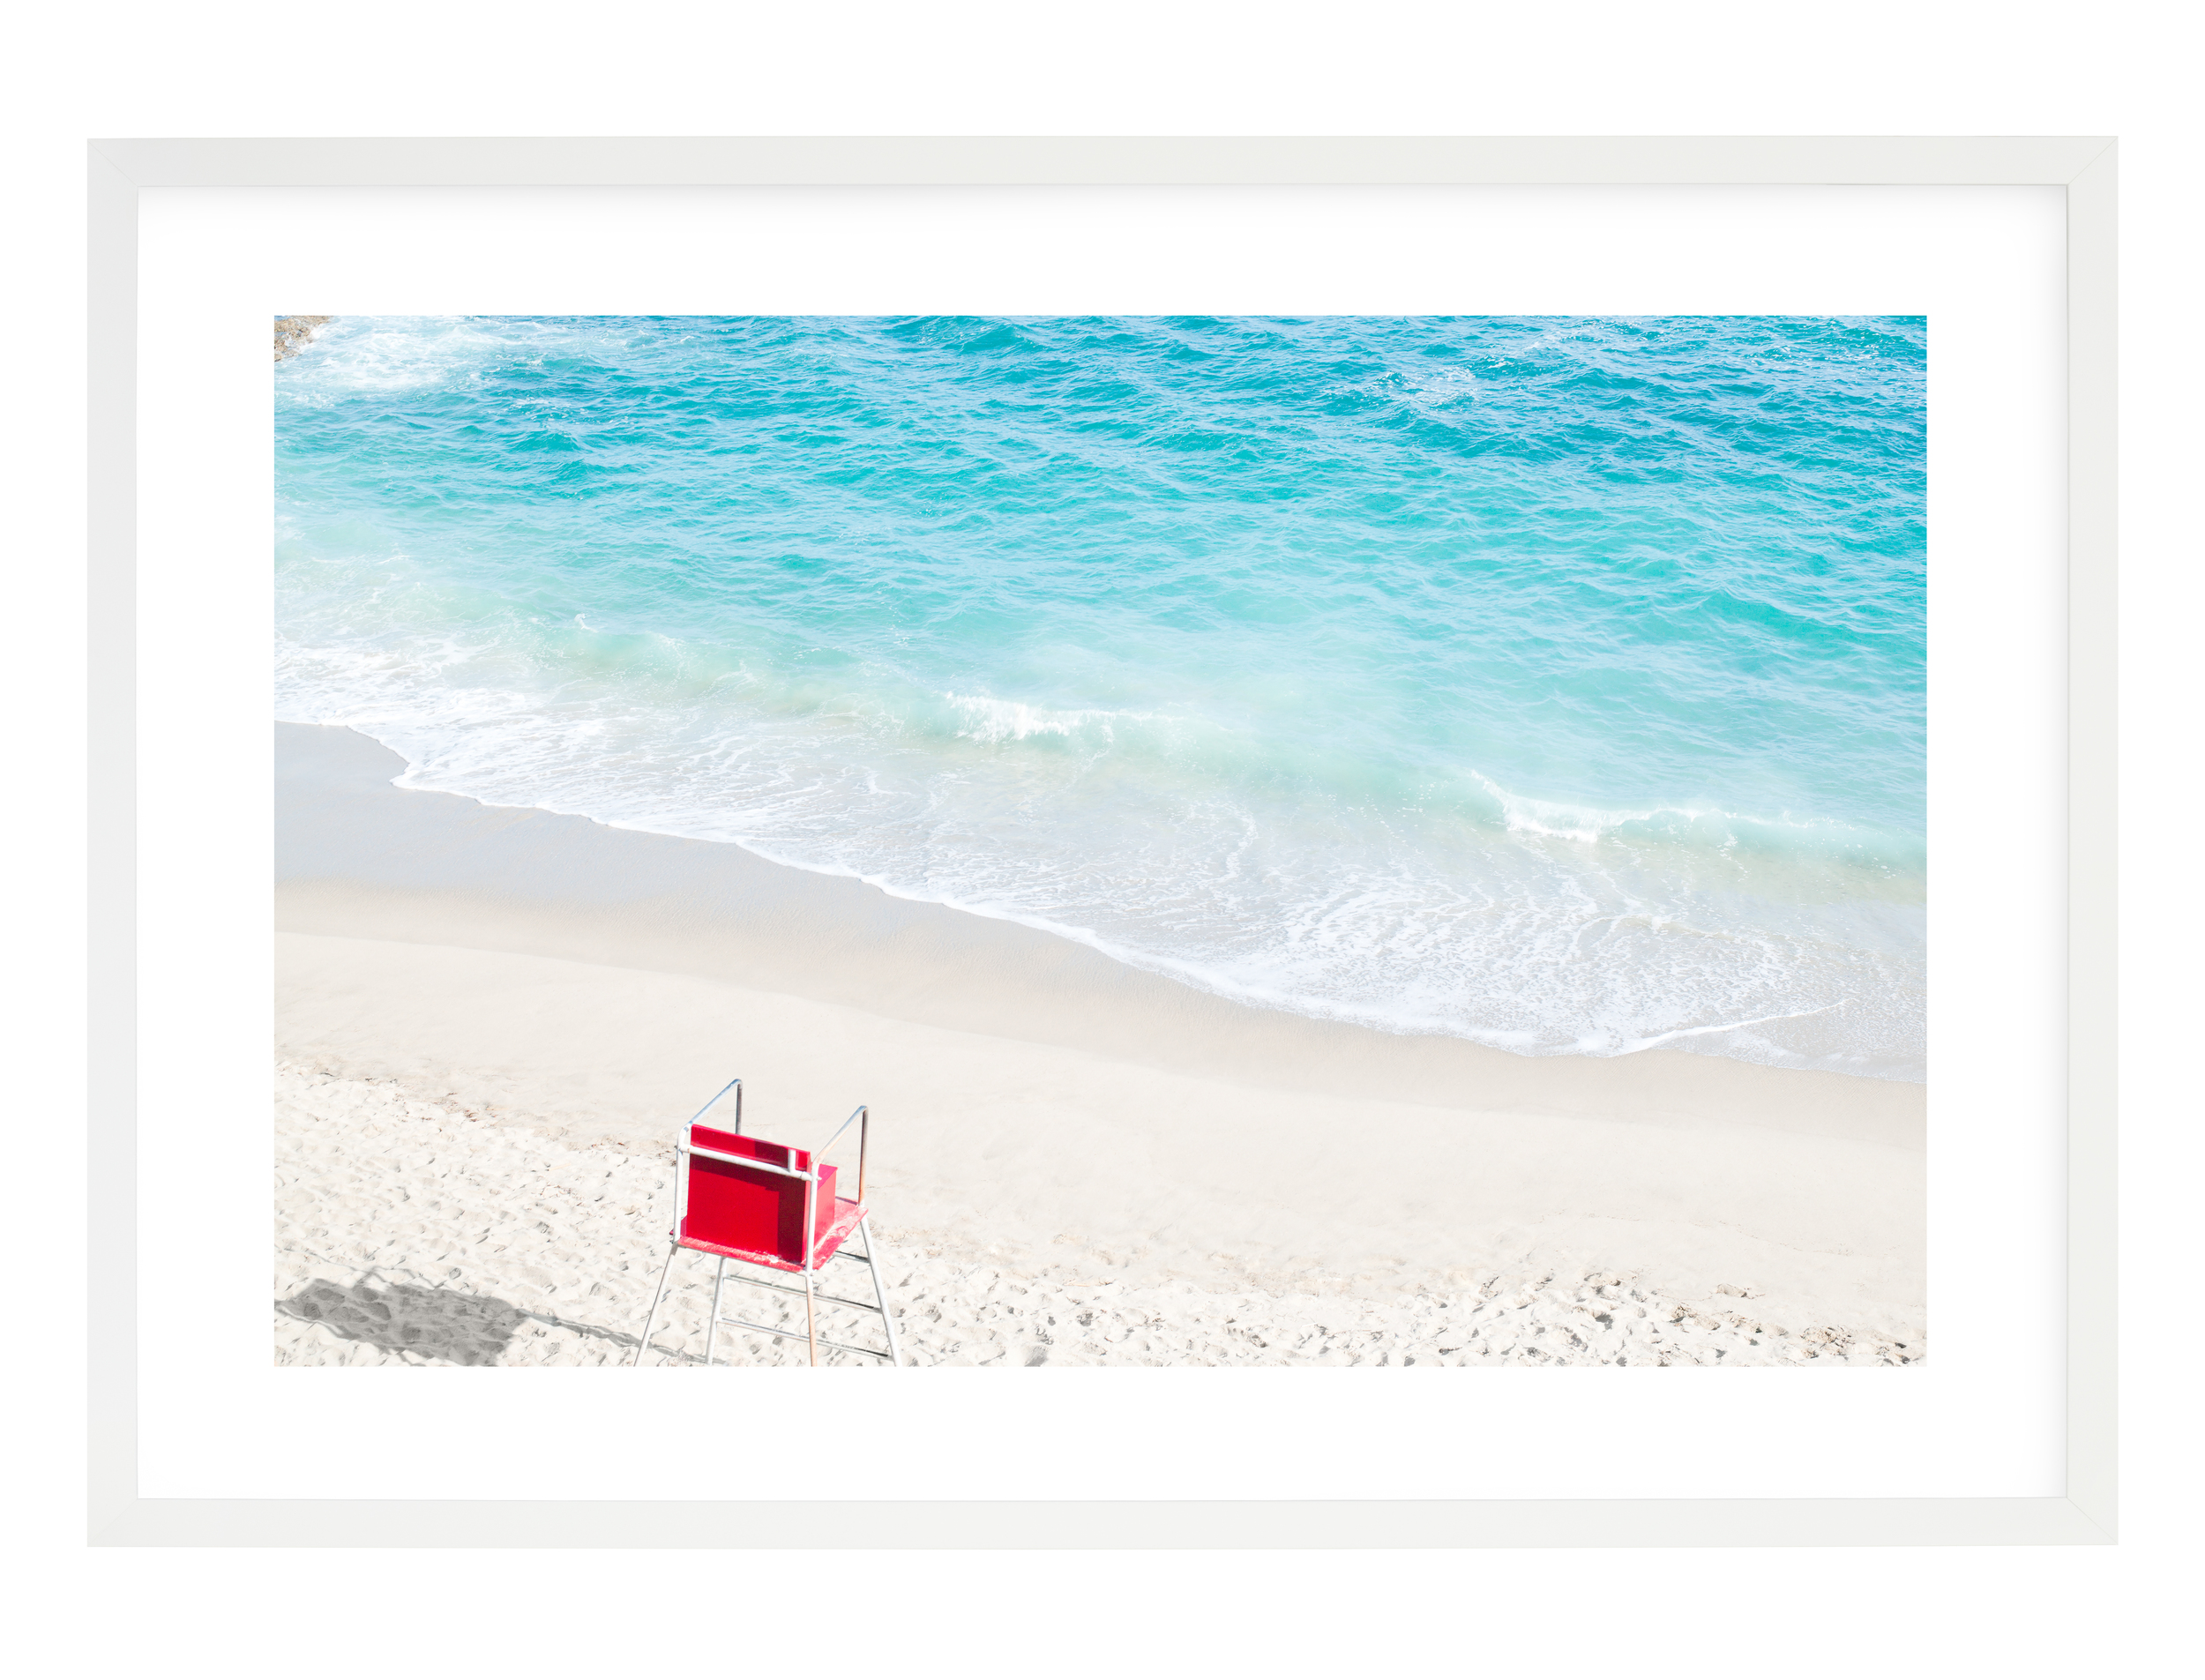 JP+GREENWOOD_RED+CHAIR_FRONT+VIEW.jpg